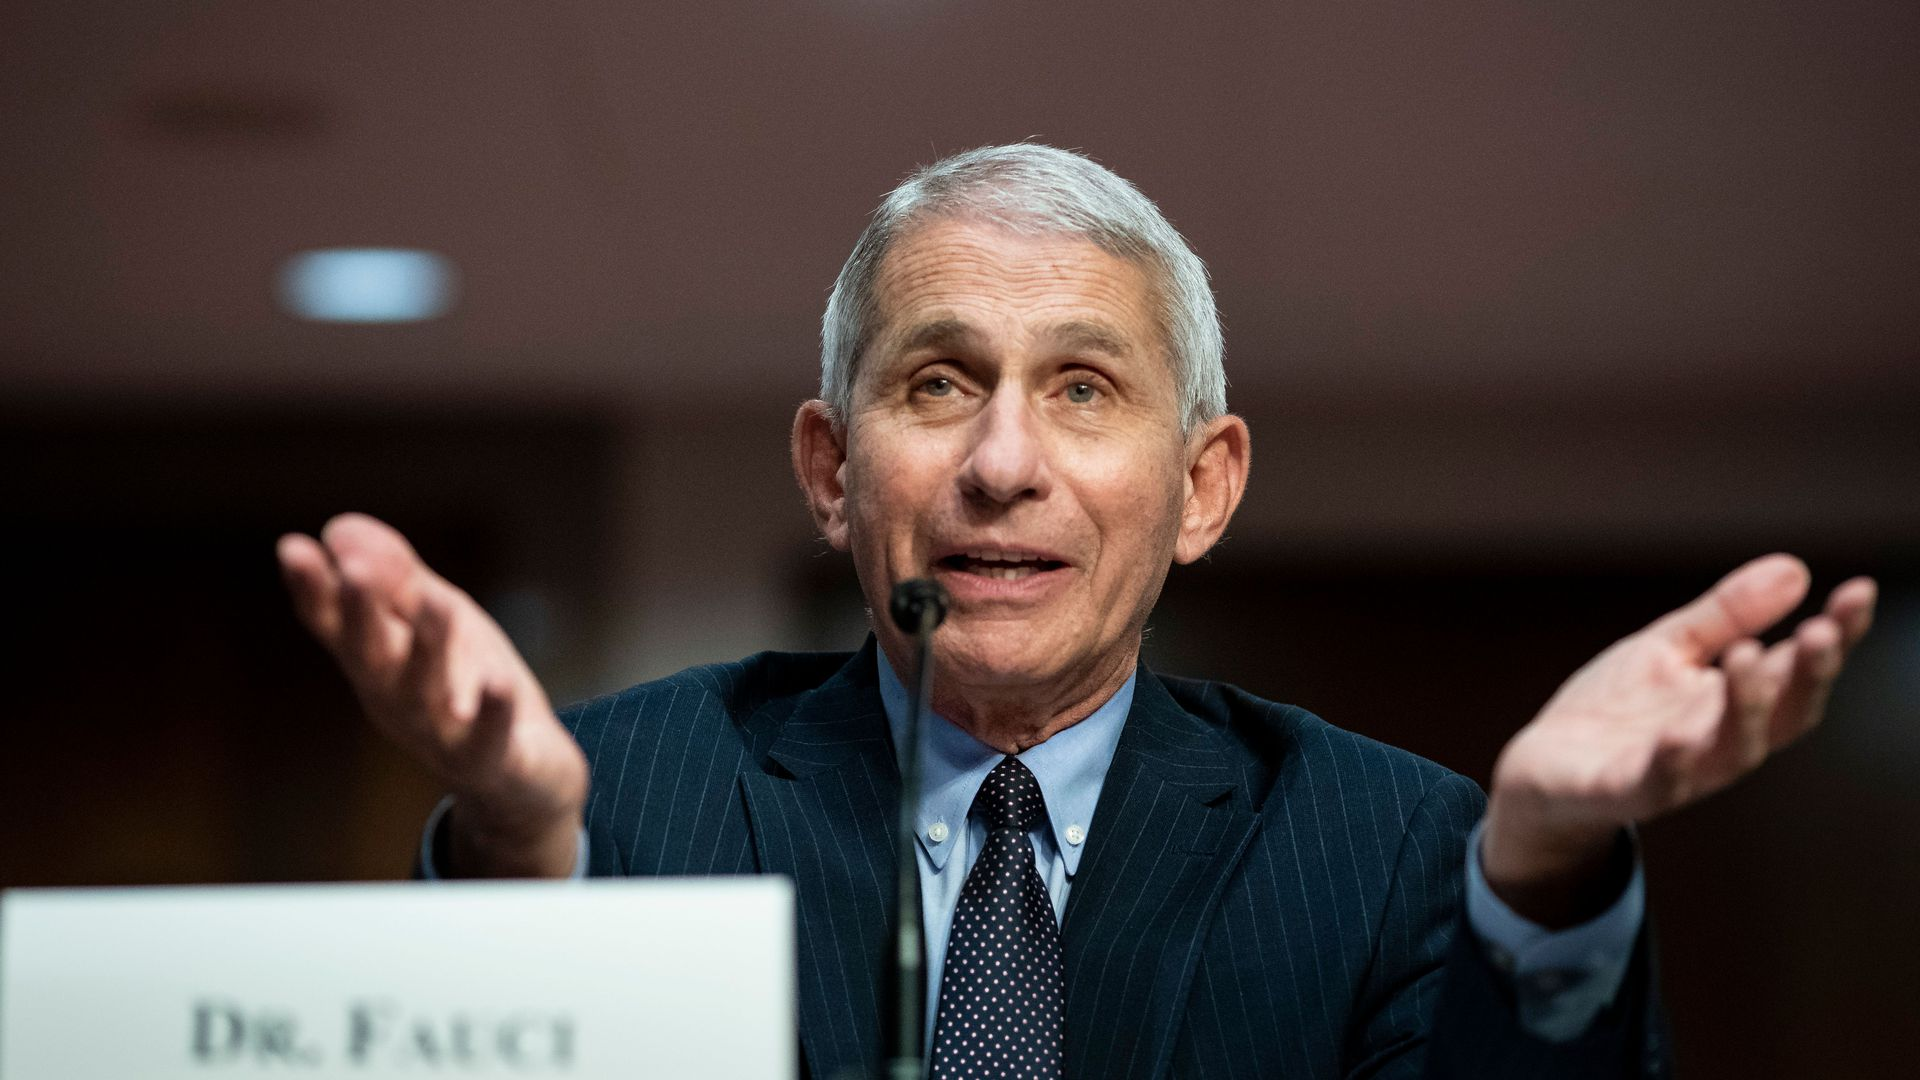 Fauci Warns Of 'False Complacency' As COVID-19 Death Rate Declines